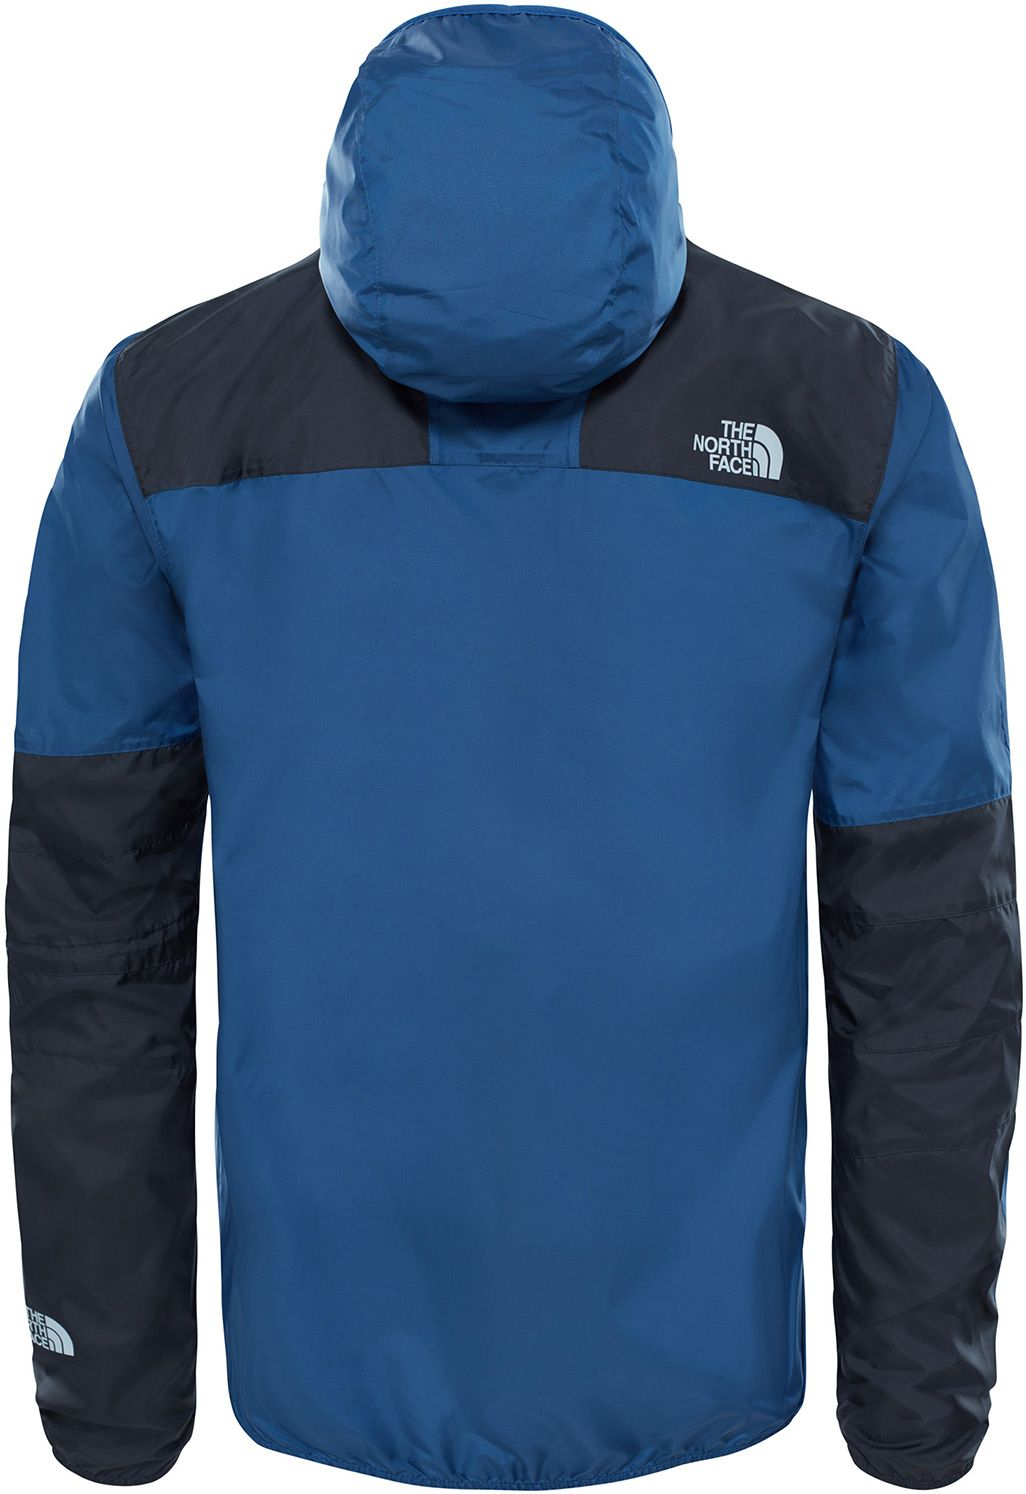 416f1caef The North Face Men's 1985 Mountain Light Jacket